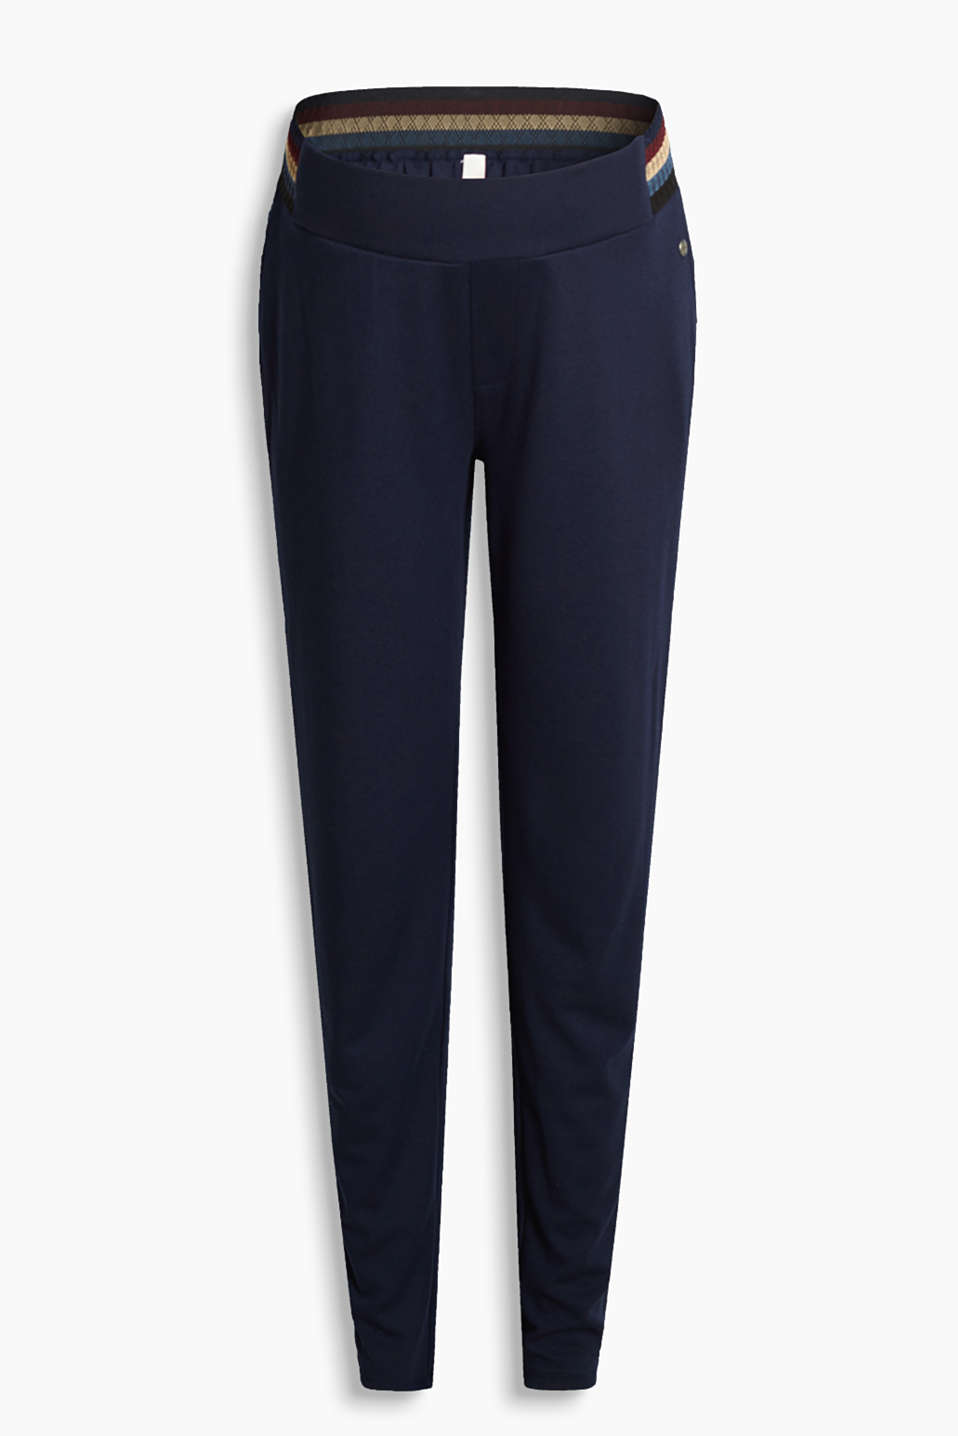 Casual and comfortable stretch jersey trousers with supportive under-bump waistband